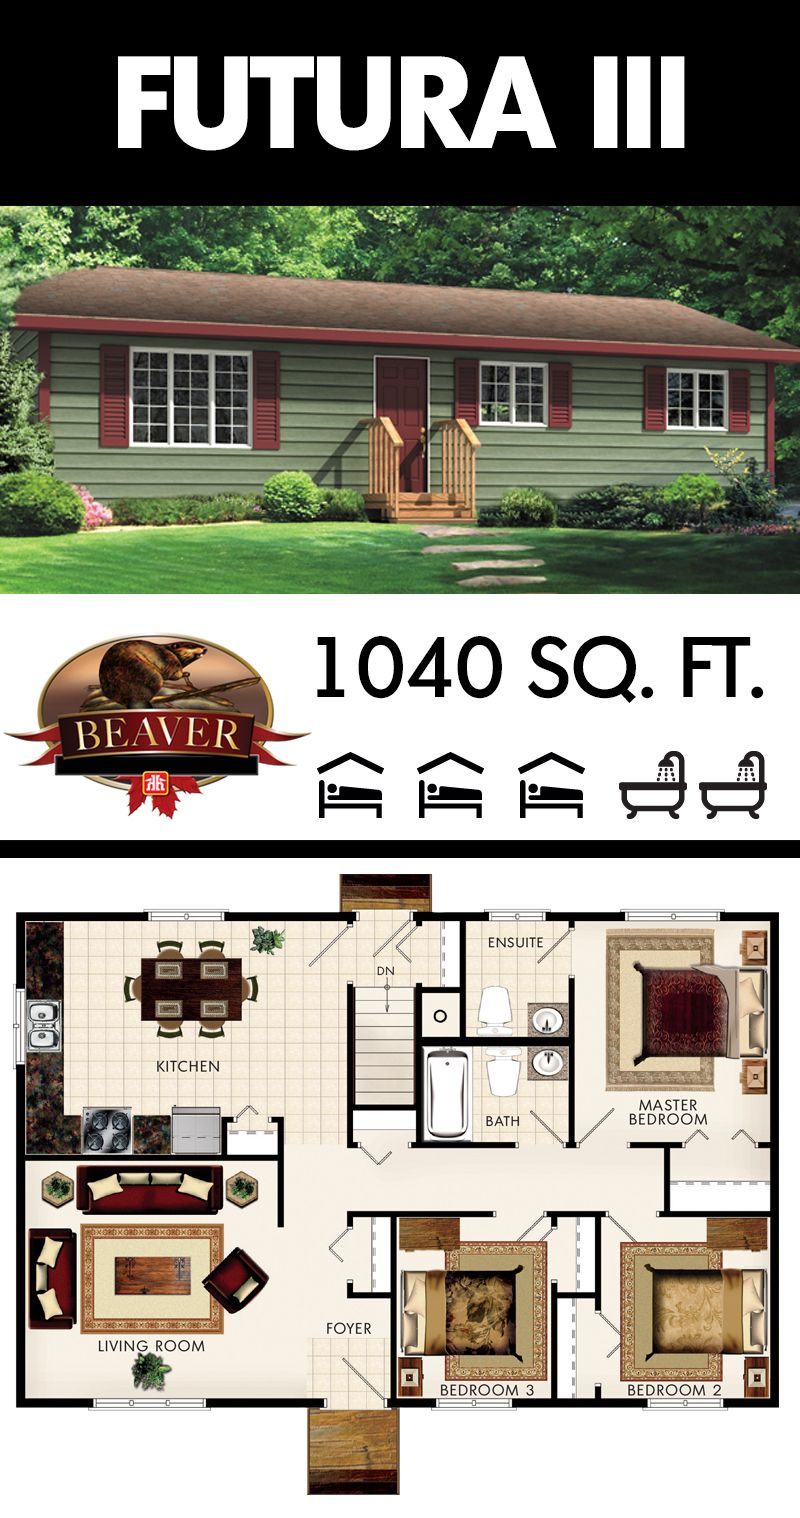 At 1040 sq. ft. Futura III model is a simply designed bungalow that ...